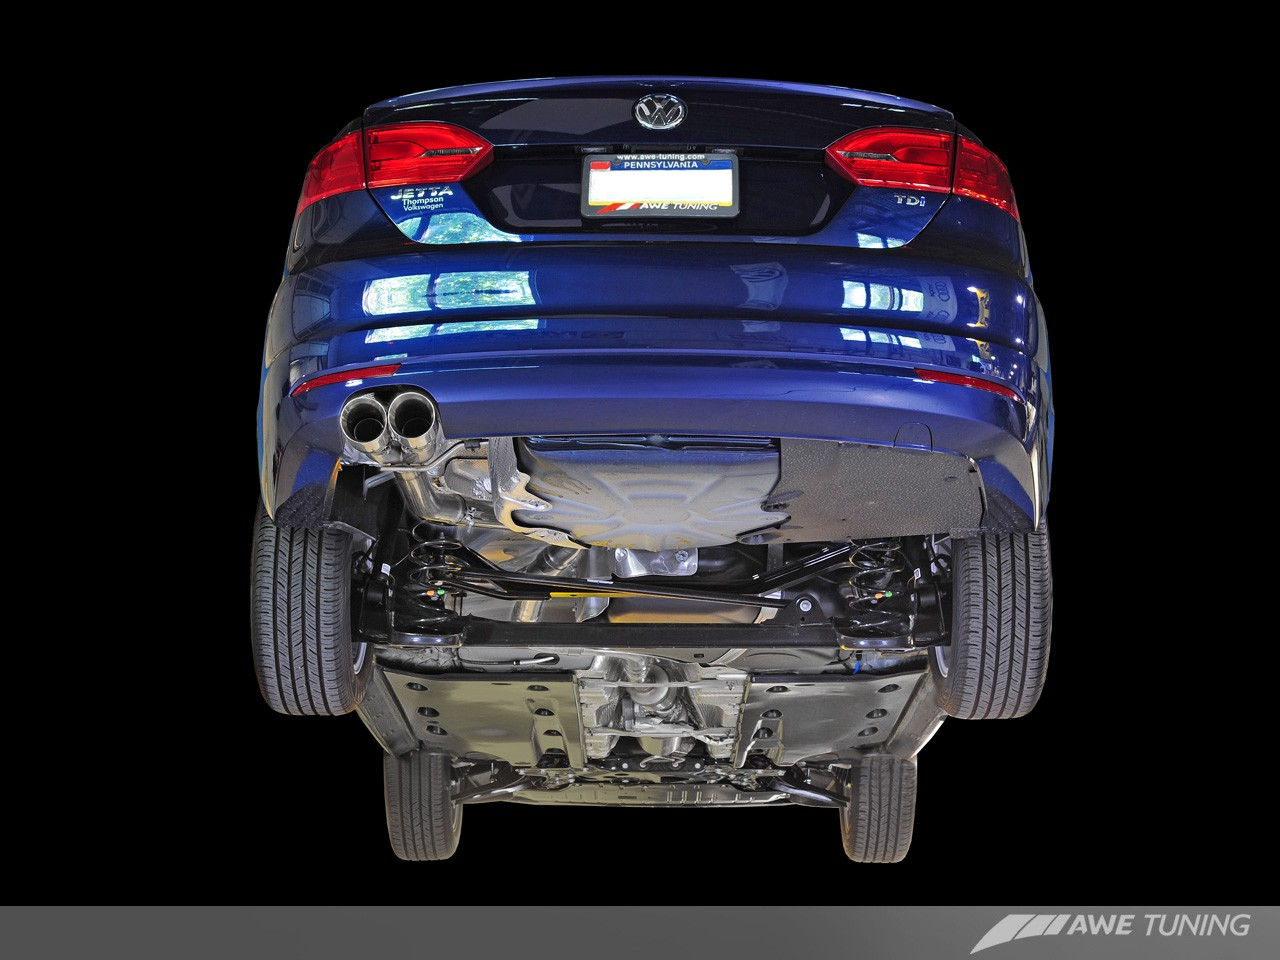 AWE Tuning Mk6 Jetta 2.0 TDI Touring Edition Exhaust System